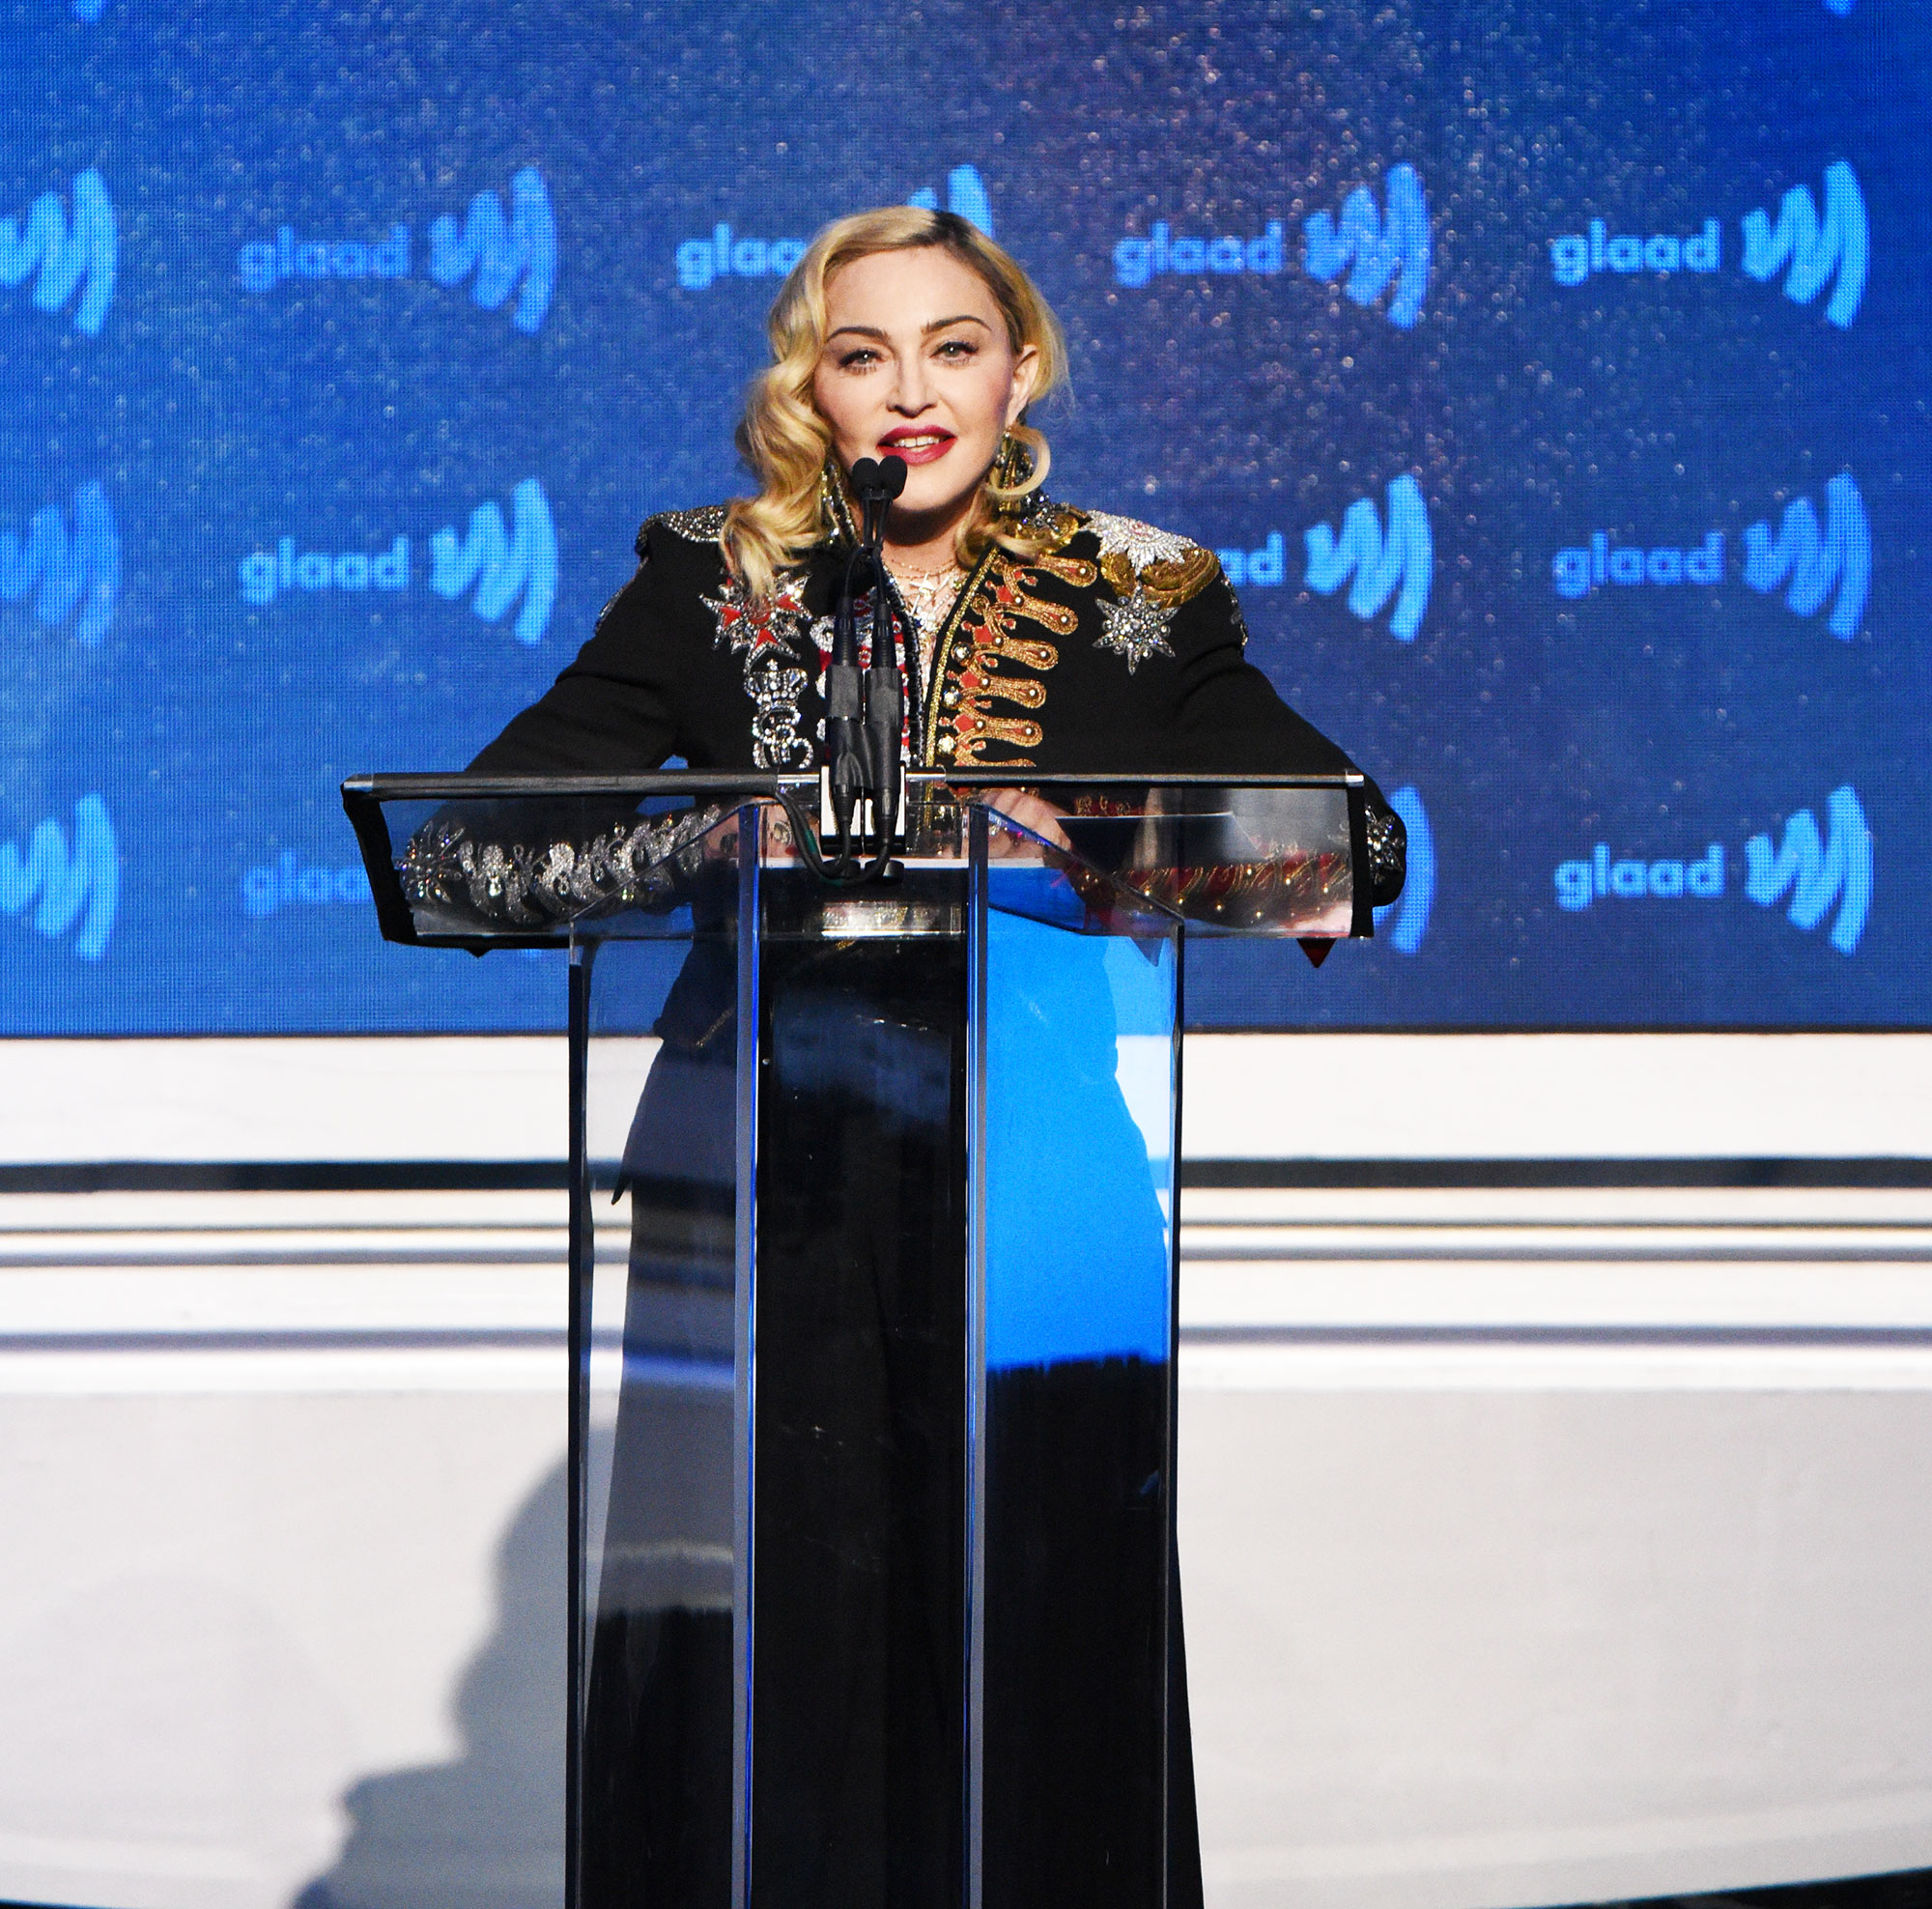 See the Stars at the GLAAD Awards madonna - Wearing an Elizabeth Paris 1902 suit and MAE hat.